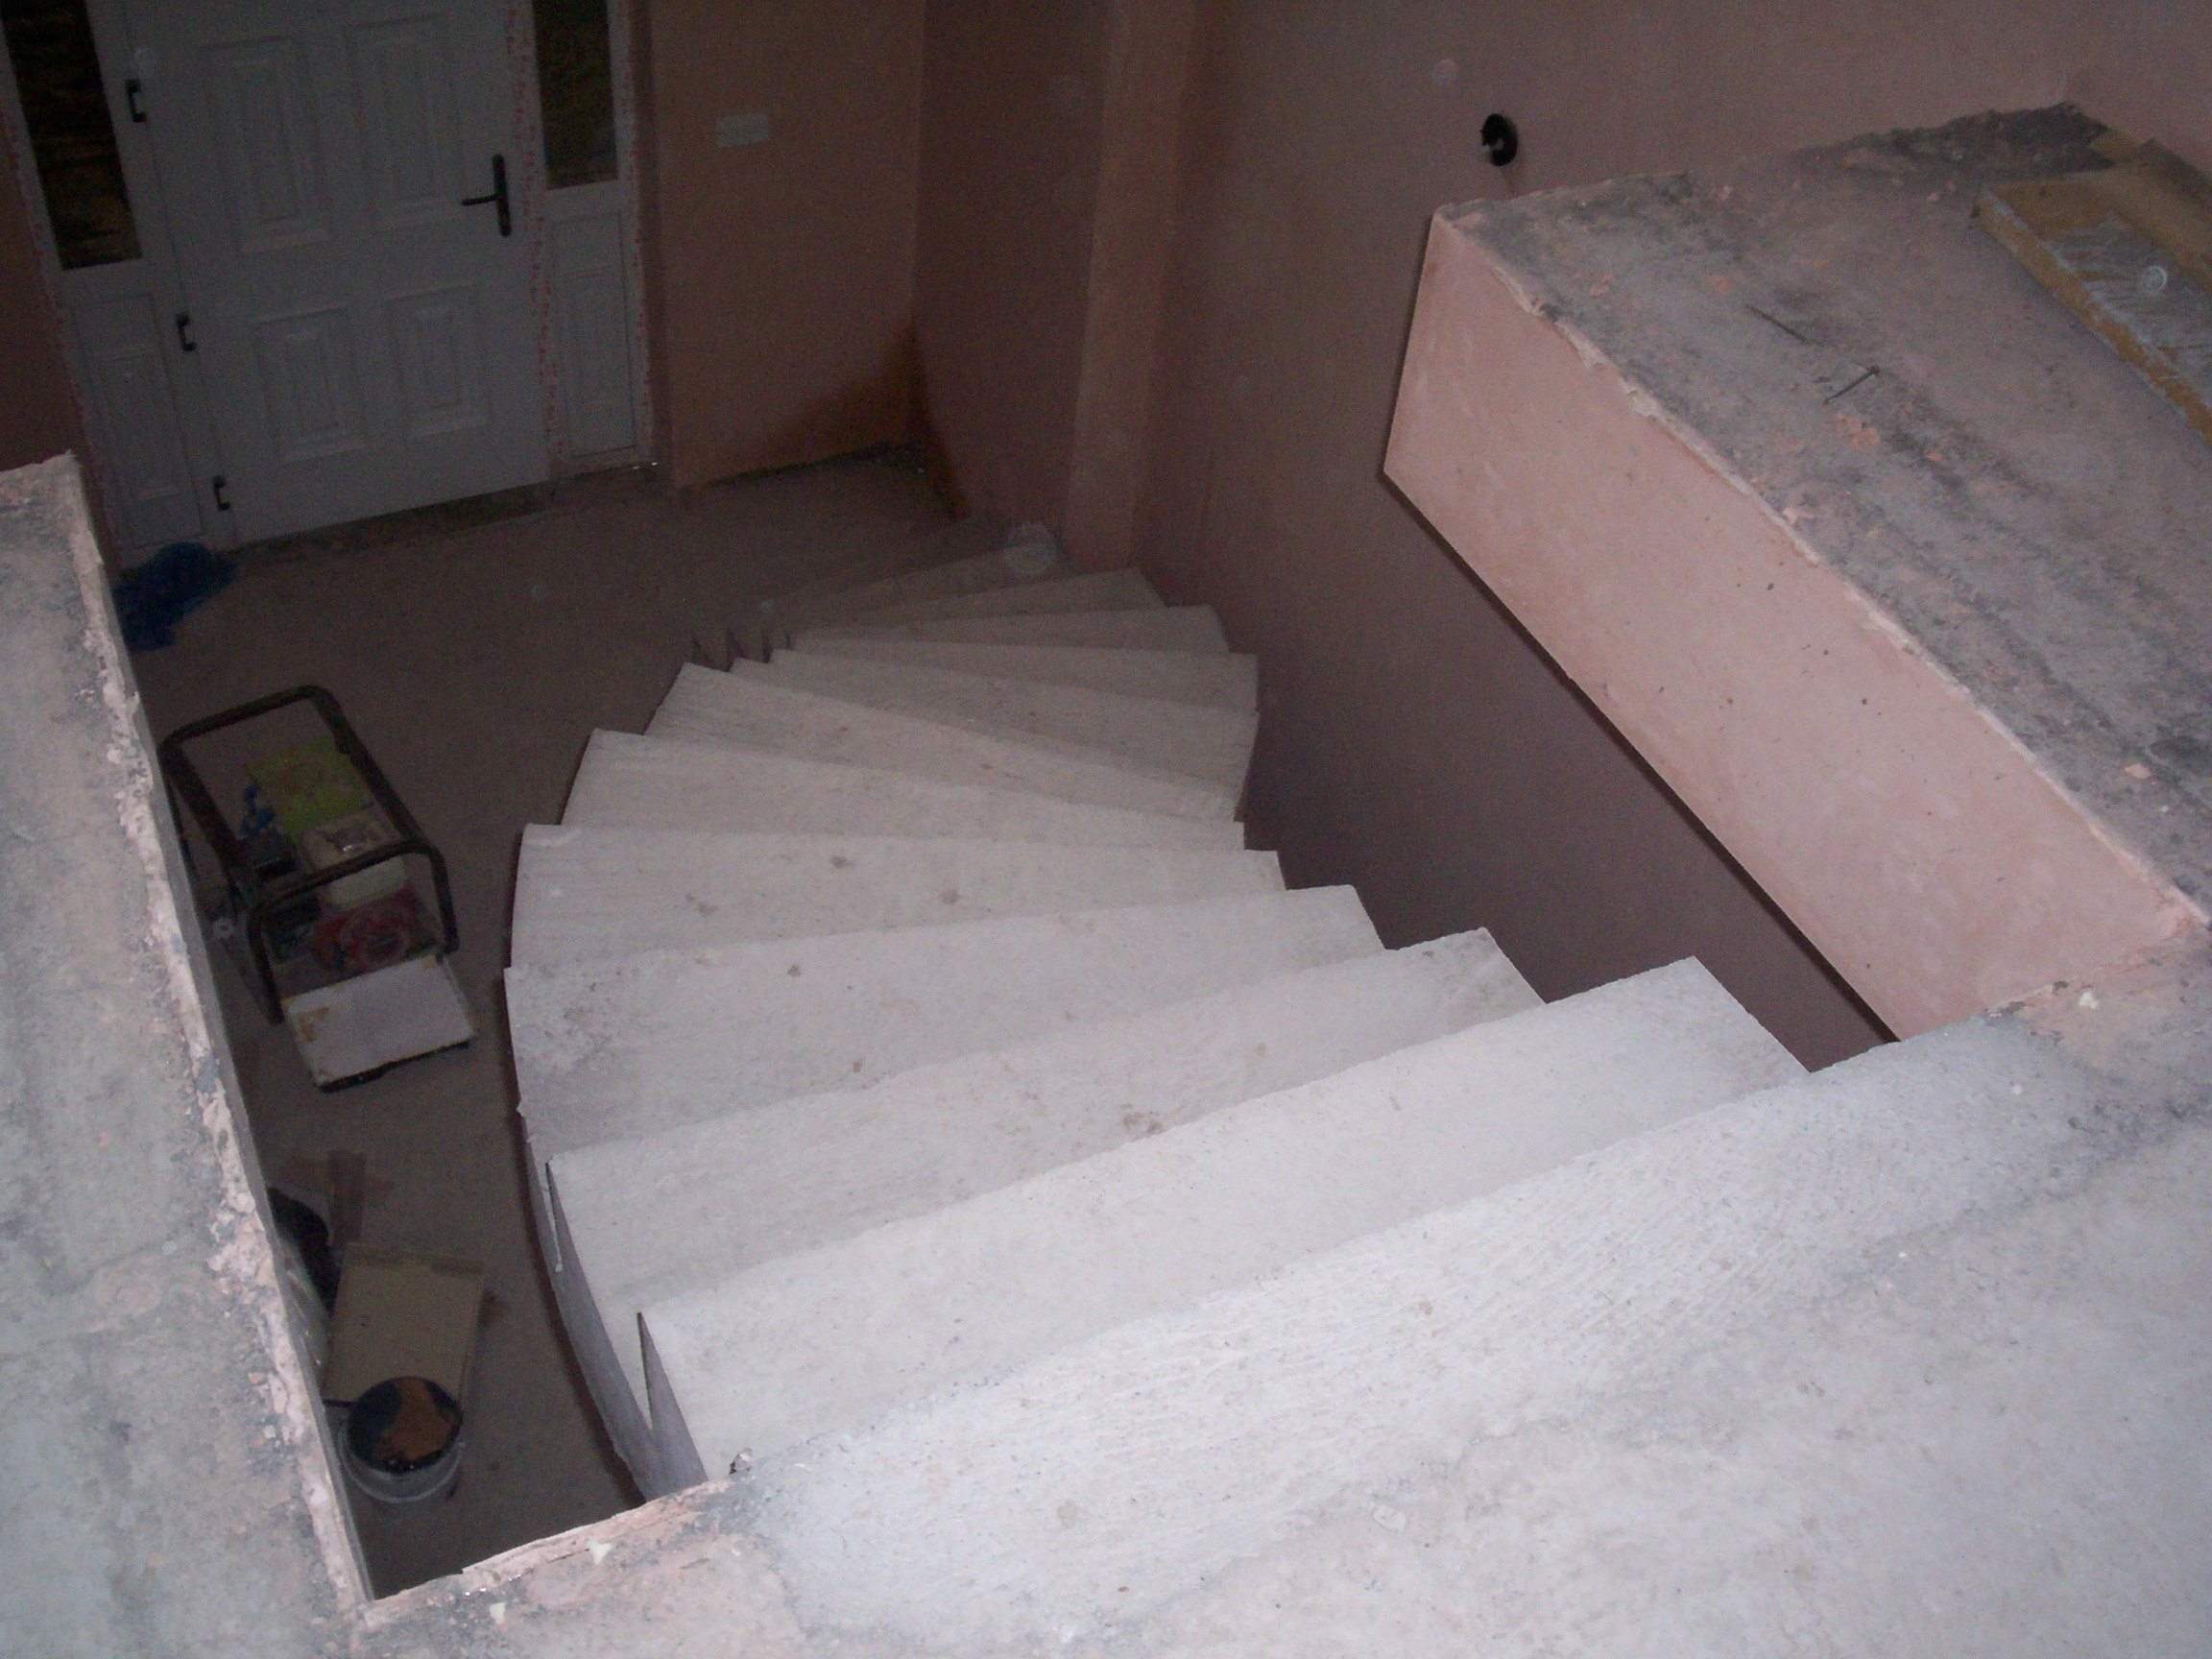 Wonderful ... How To Install Carpet On Concrete Bat With Pictures Carpet On Concrete  Srs Carpet Ideas How ...